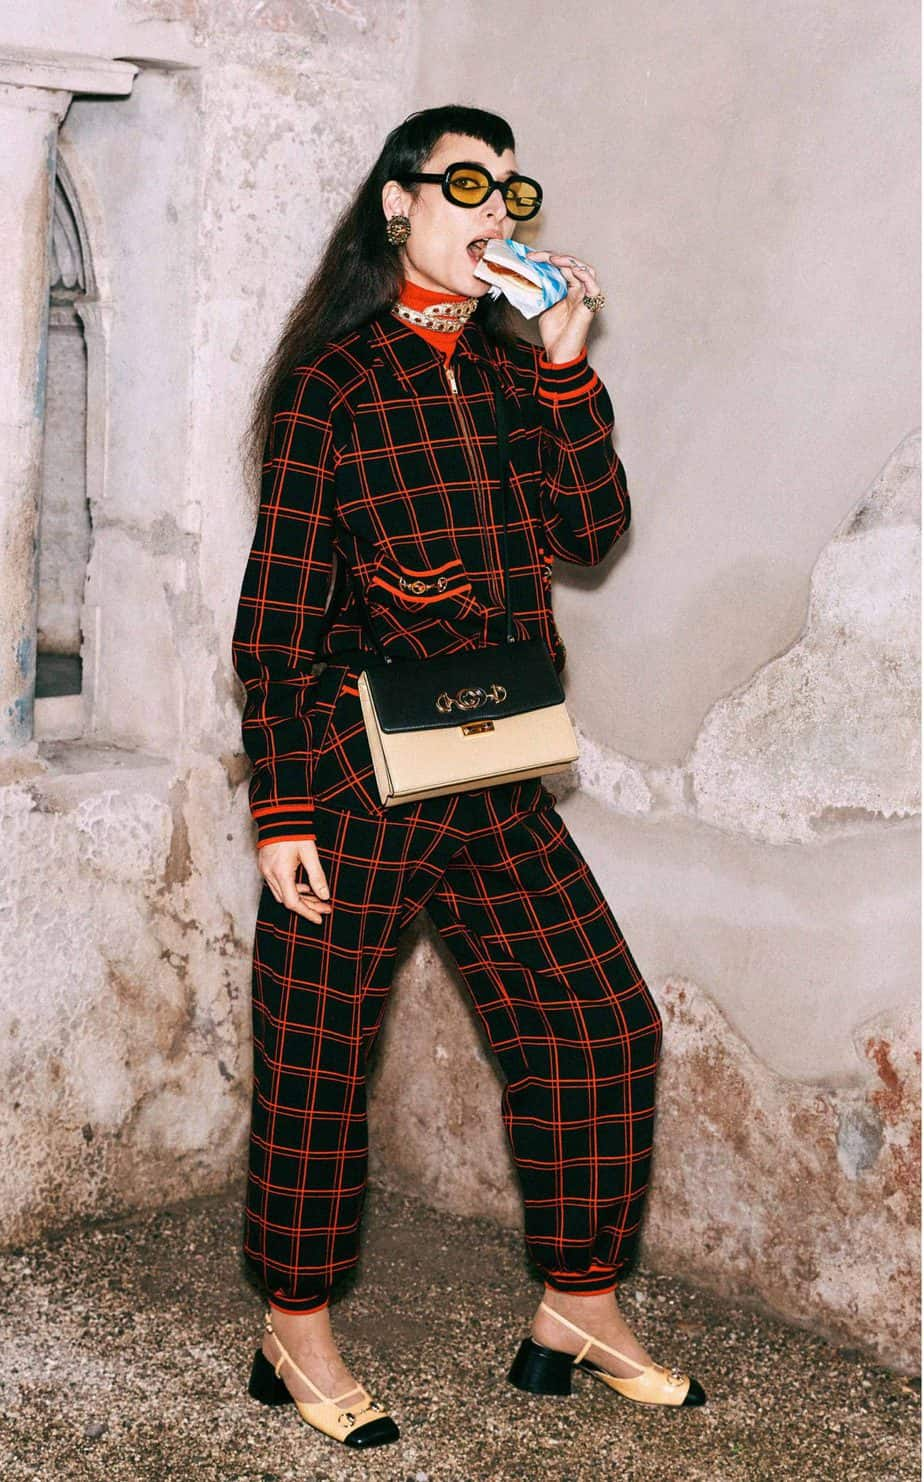 GUCCI, FALL 2019. WOMEN'S FASHION, Photographer Harmony Korine, Art Director, Christopher Simmonds - 8